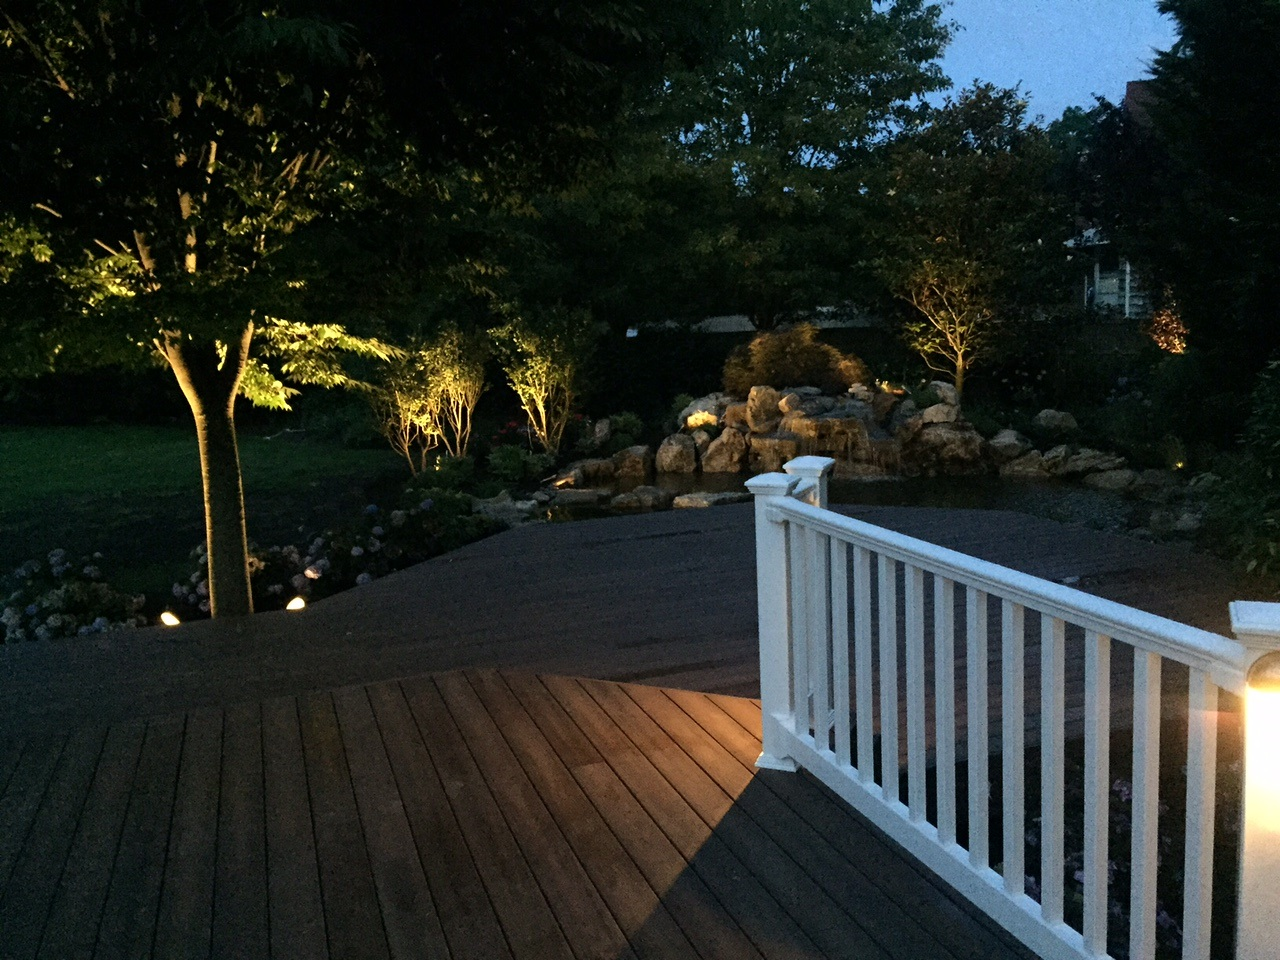 Outdoor living ideas by quiet earth landscapes - Seattle Deck Lighting